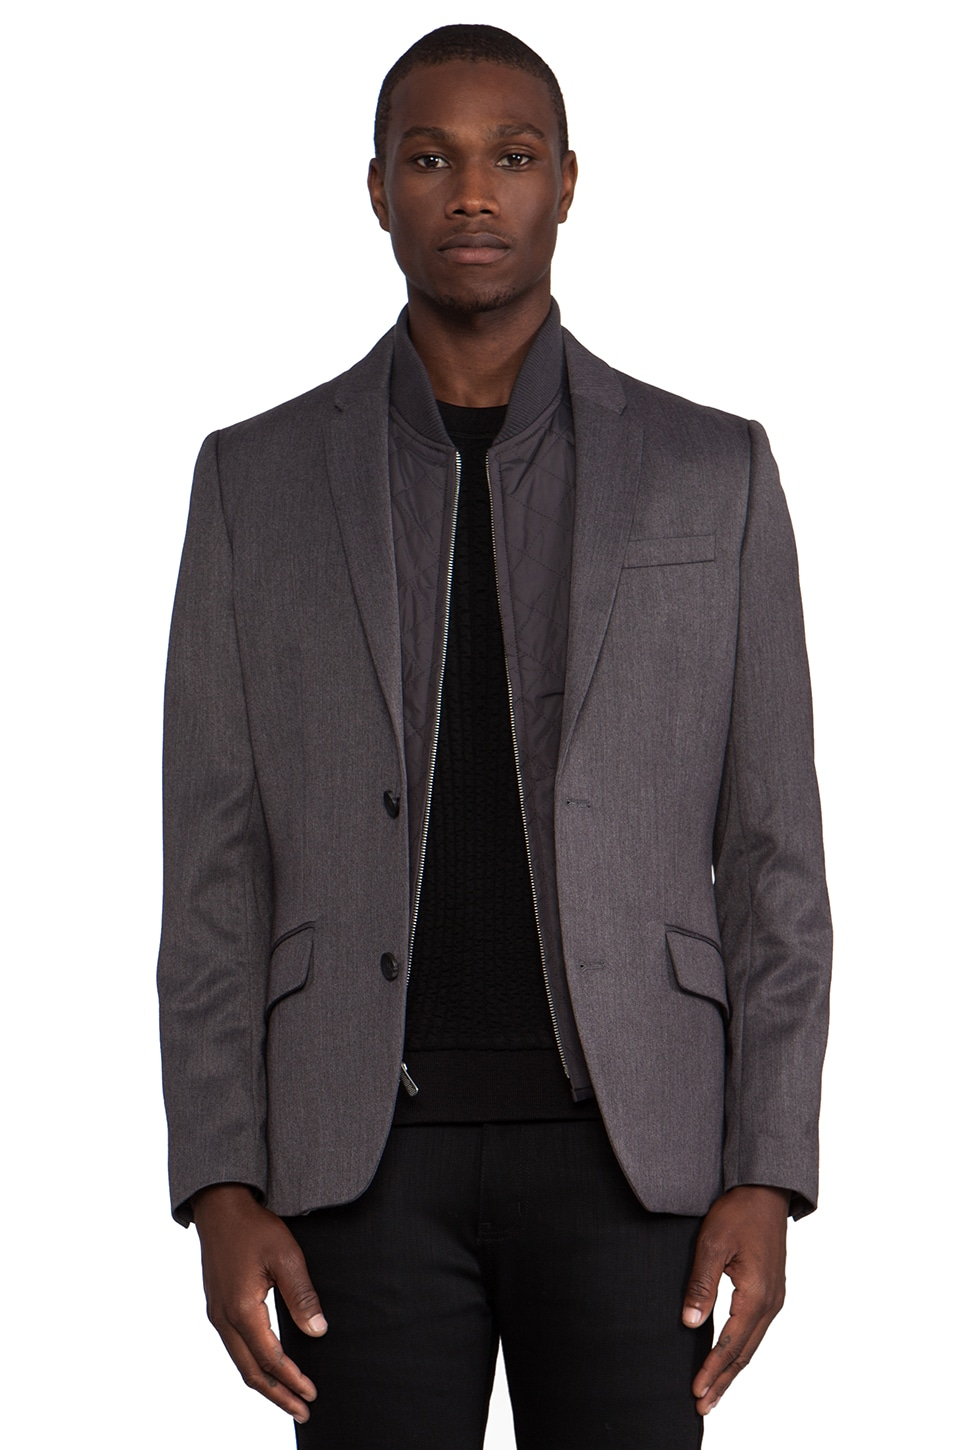 Penguin Blazer w/ Detachable Vest in Dark Steel Heather